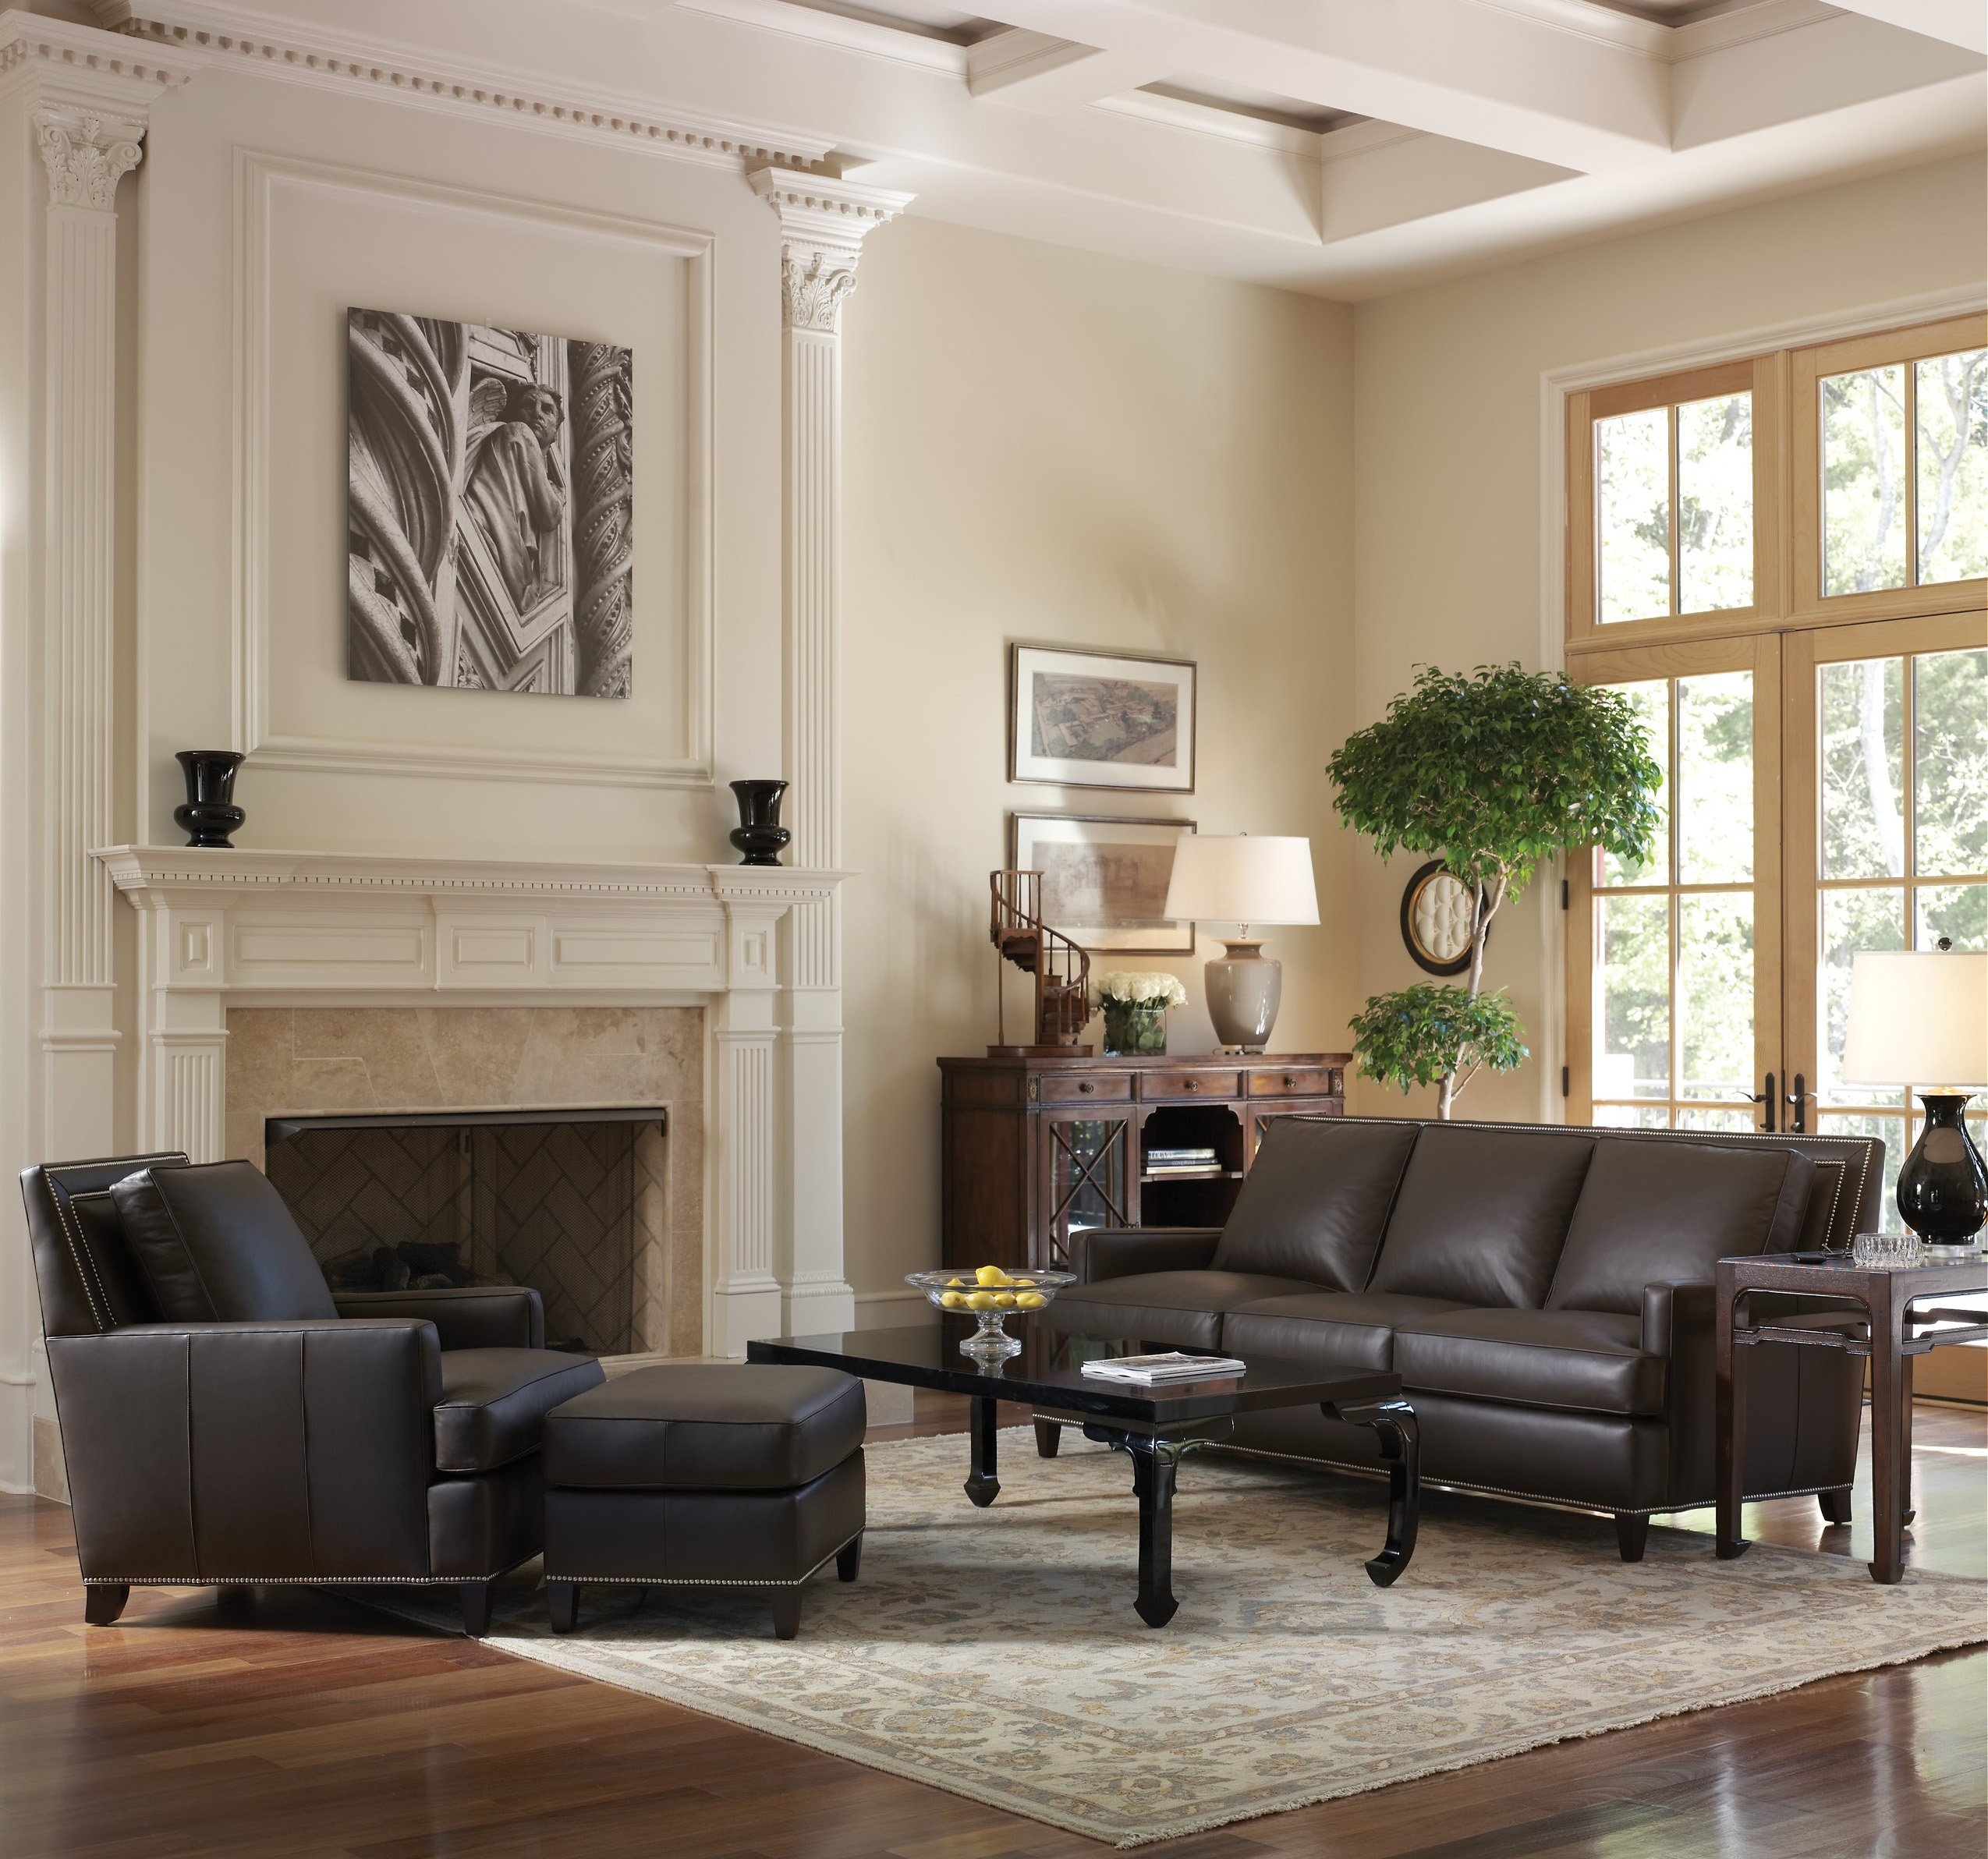 Leather furniture ensemble with Stowers Furniture